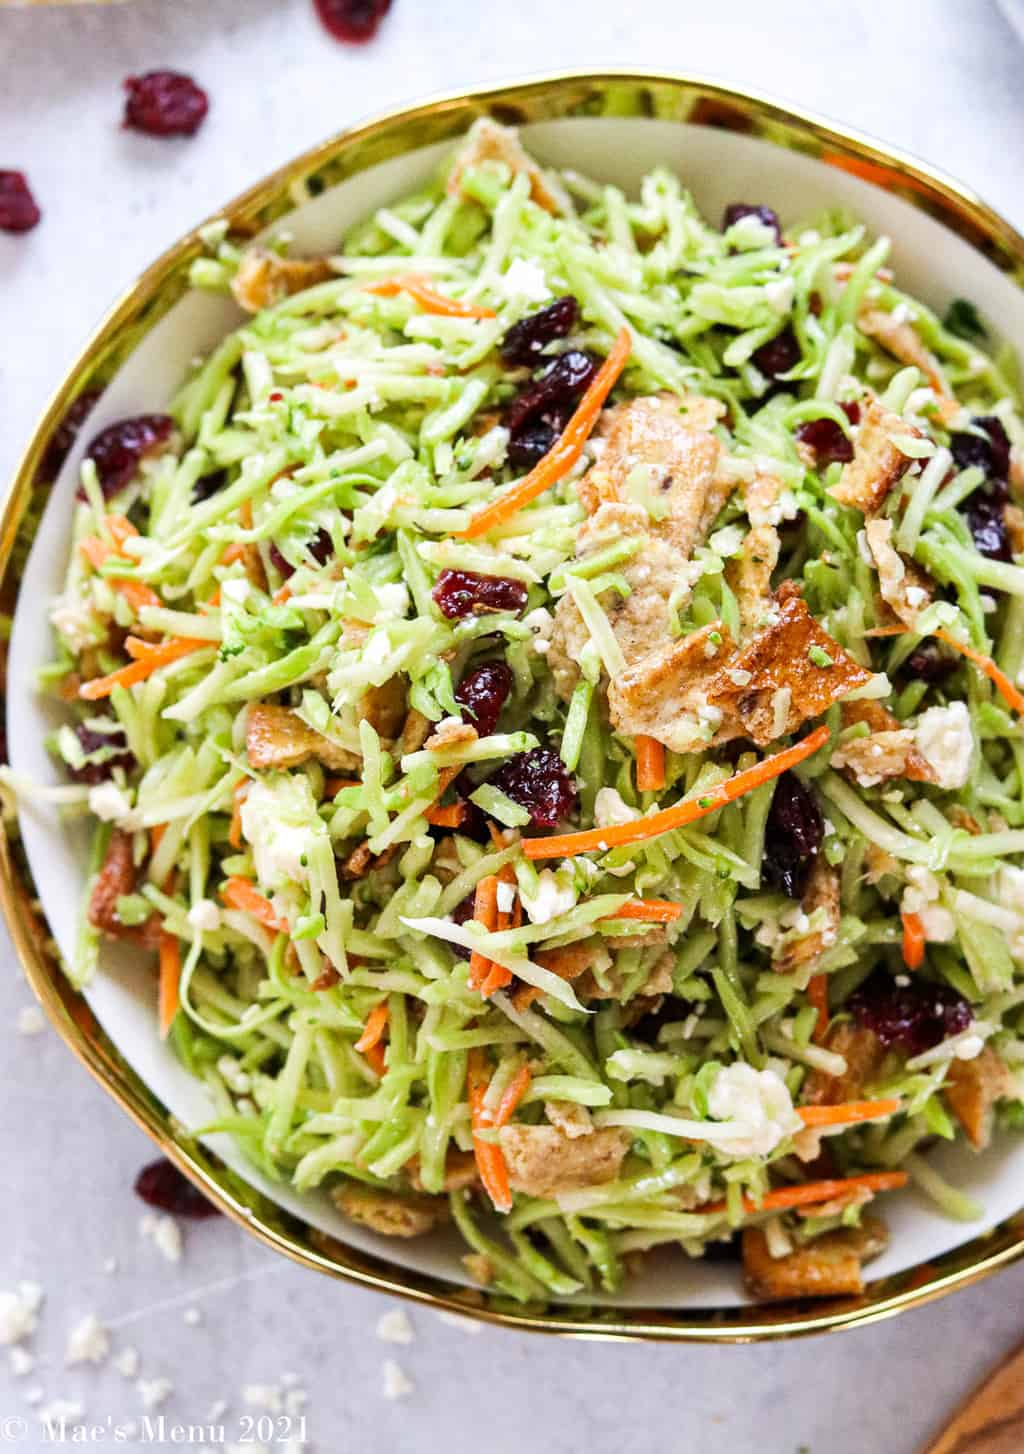 An up-close overhead shot of a serving bowl of my broccoli slaw recipe